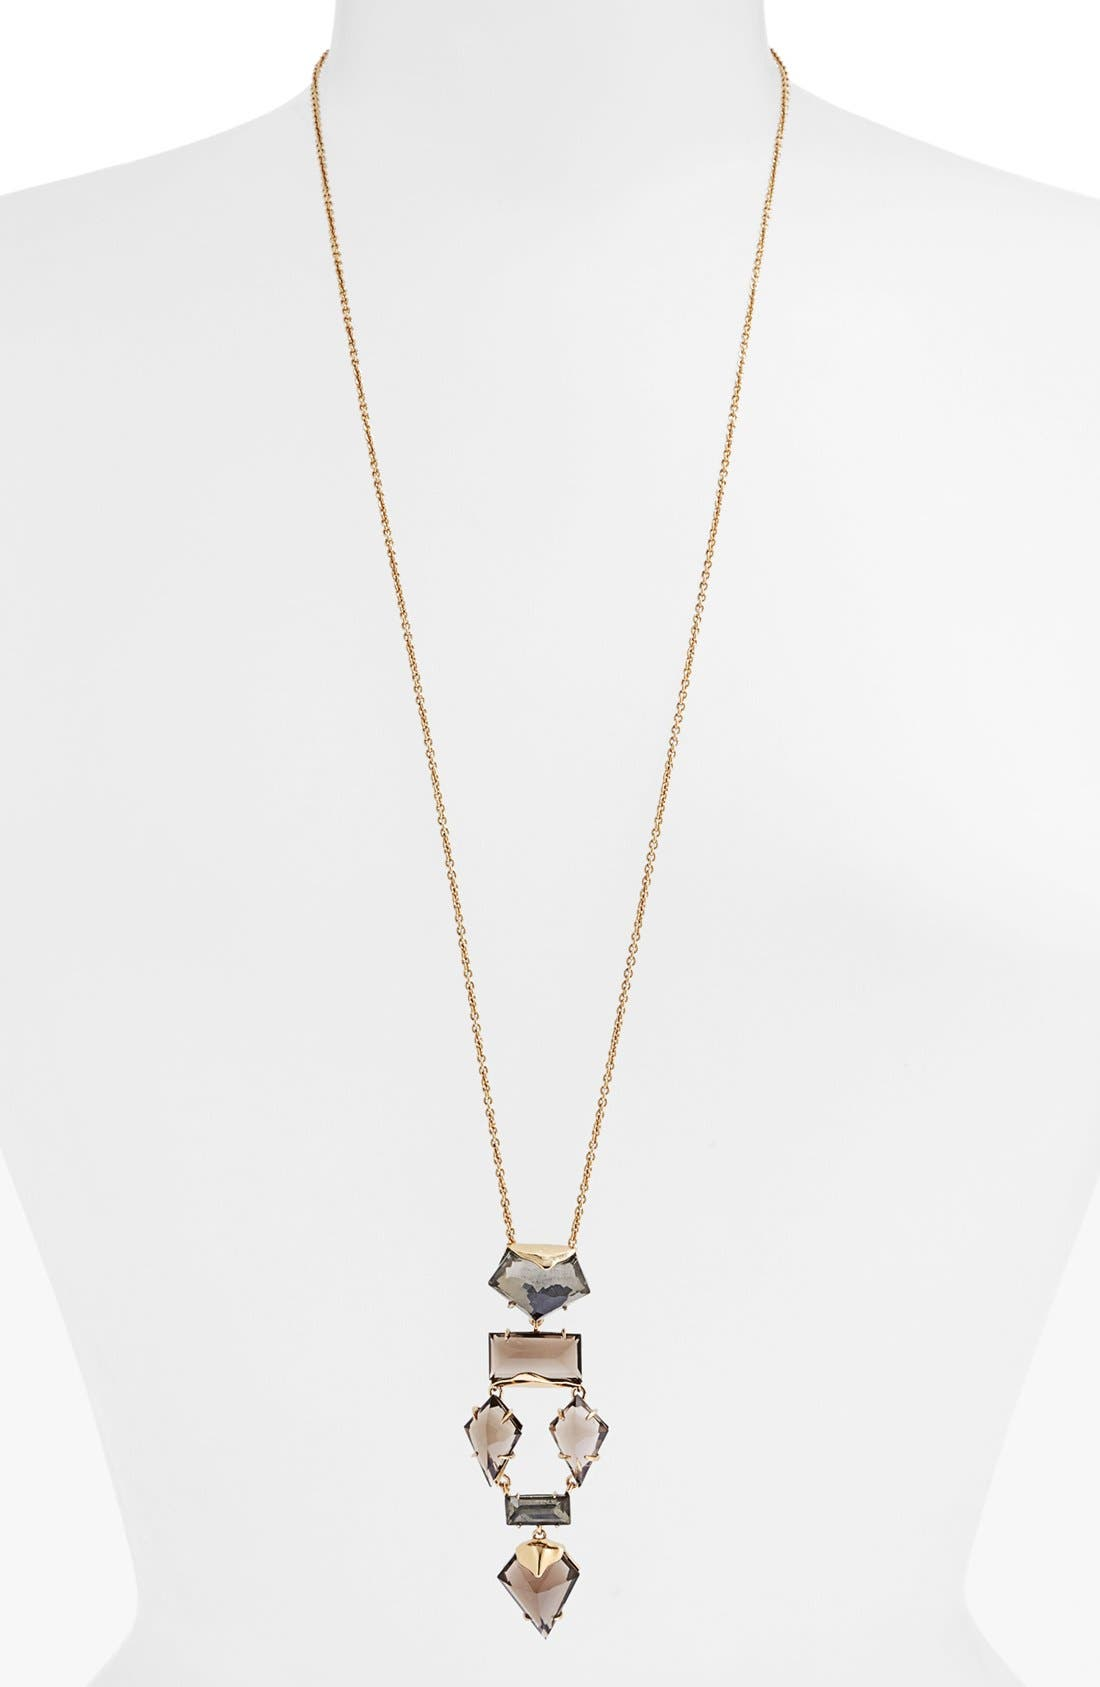 Main Image - Alexis Bittar 'Miss Havisham' Long Pendant Necklace